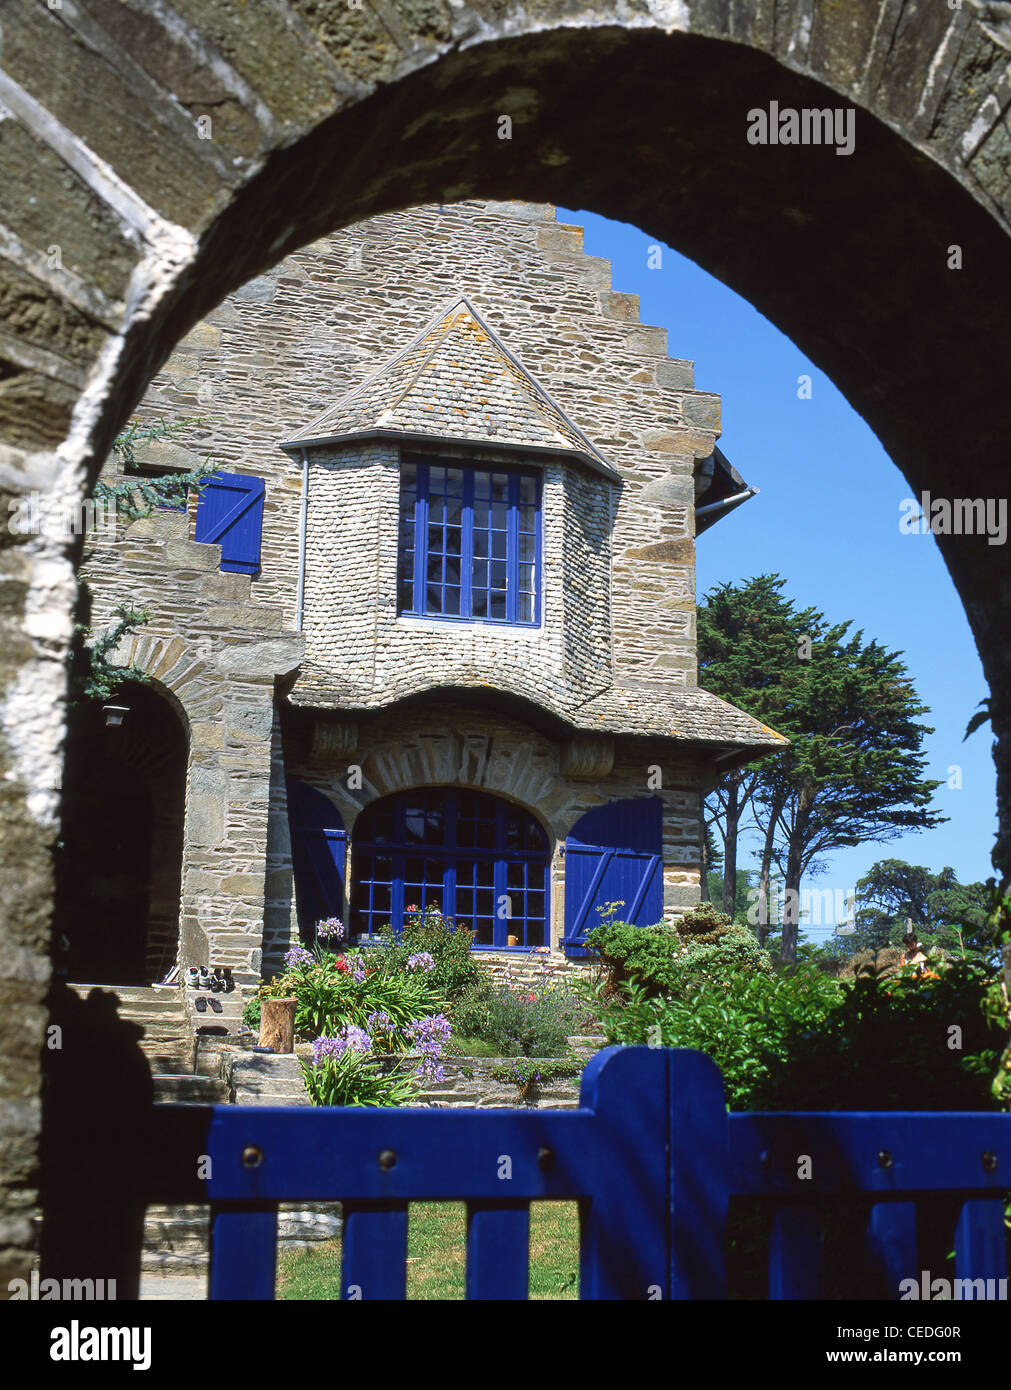 French villa, Perros-Guirec, Côtes-d'Armor, Brittany, France Stock Photo